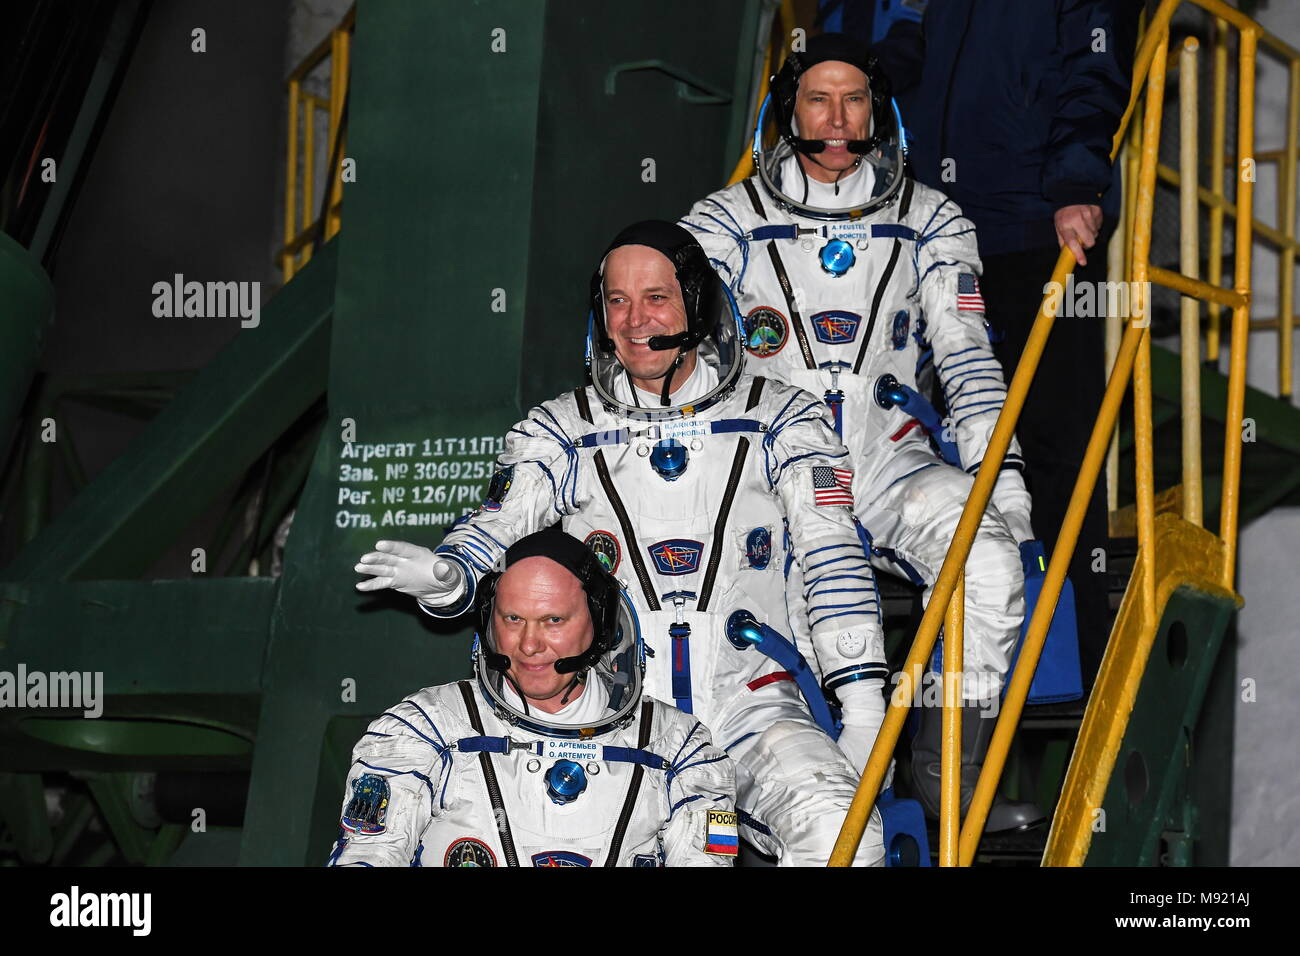 Baikonur Cosmodrome, Kazakhstan. 21st Mar, 2018. BAIKONUR, KAZAKHSTAN - MARCH 21, 2018: ISS Expedition 55/56 main crew members Roscosmos cosmonaut Oleg Artemyev, NASA astronauts Richard Arnold and Andrew J. Feustel (L-R) in spacesuits board the Soyuz MS-08 spacecraft before a launch to the International Space Station. The launch of a Soyuz-FG rocket booster carrying the Soyuz MS-08 spacecraft to the ISS from the Baikonur Cosmodrome is scheduled for March 21, 2018 at 20:44 Moscow time. Yevgenia Novozhenina/Sputnik/POOL/TASS Credit: ITAR-TASS News Agency/Alamy Live News - Stock Image